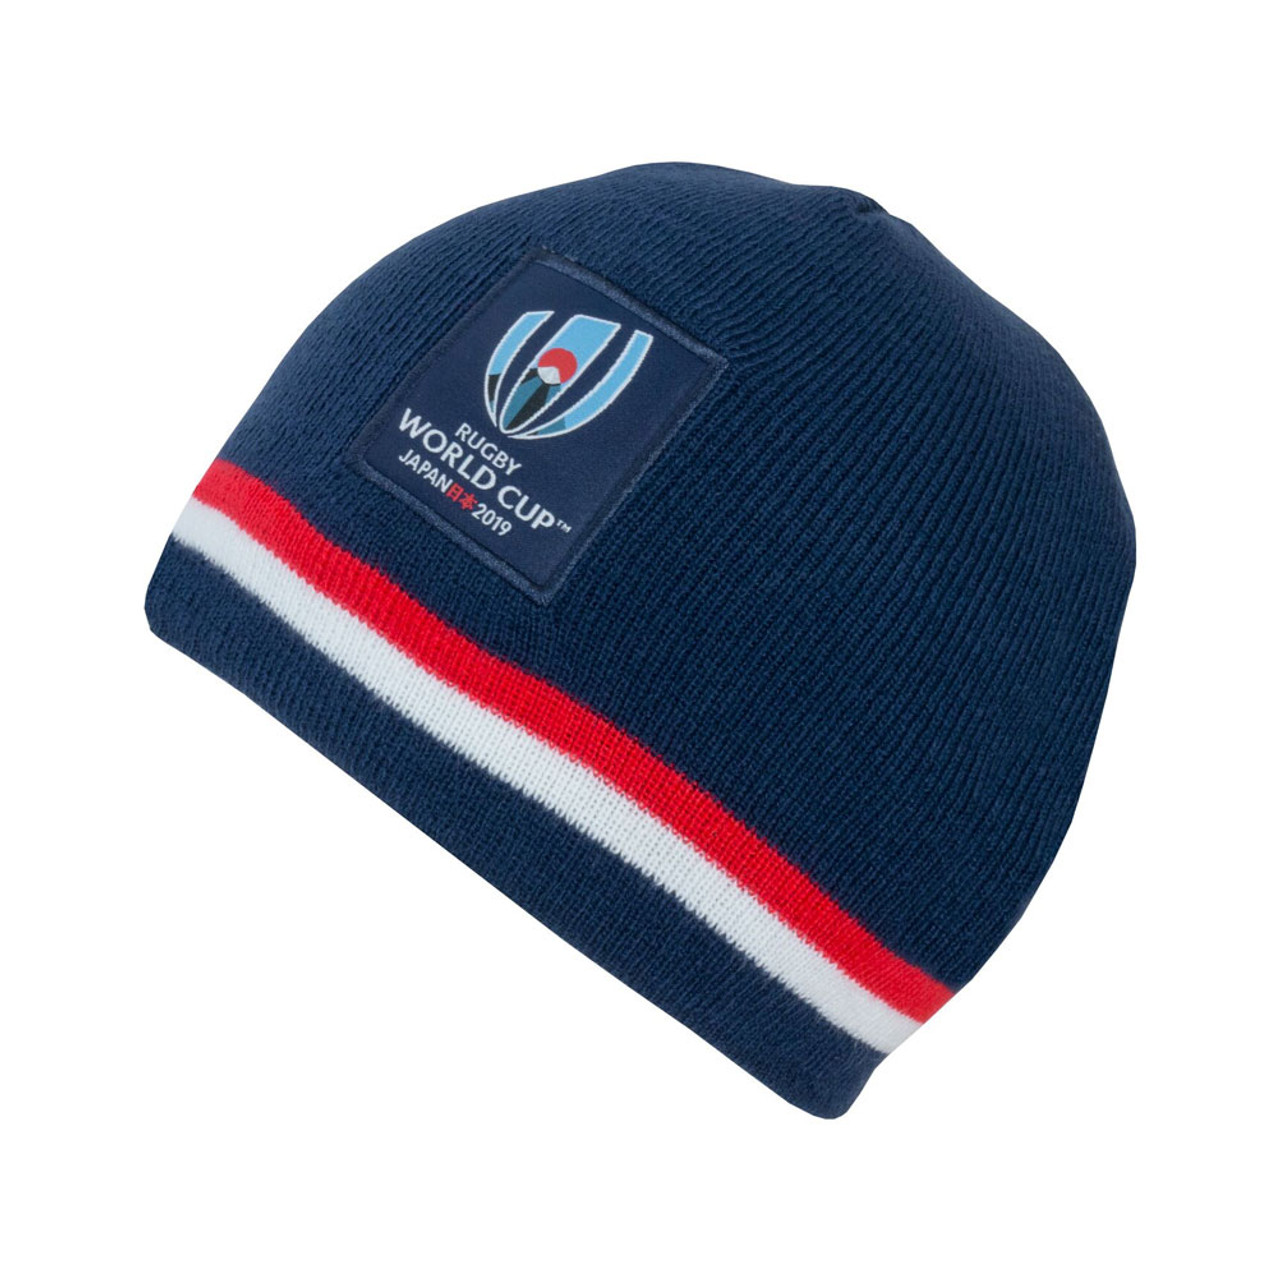 3c2fb37048f RWC 2019 Stripe Beanie Hat  navy